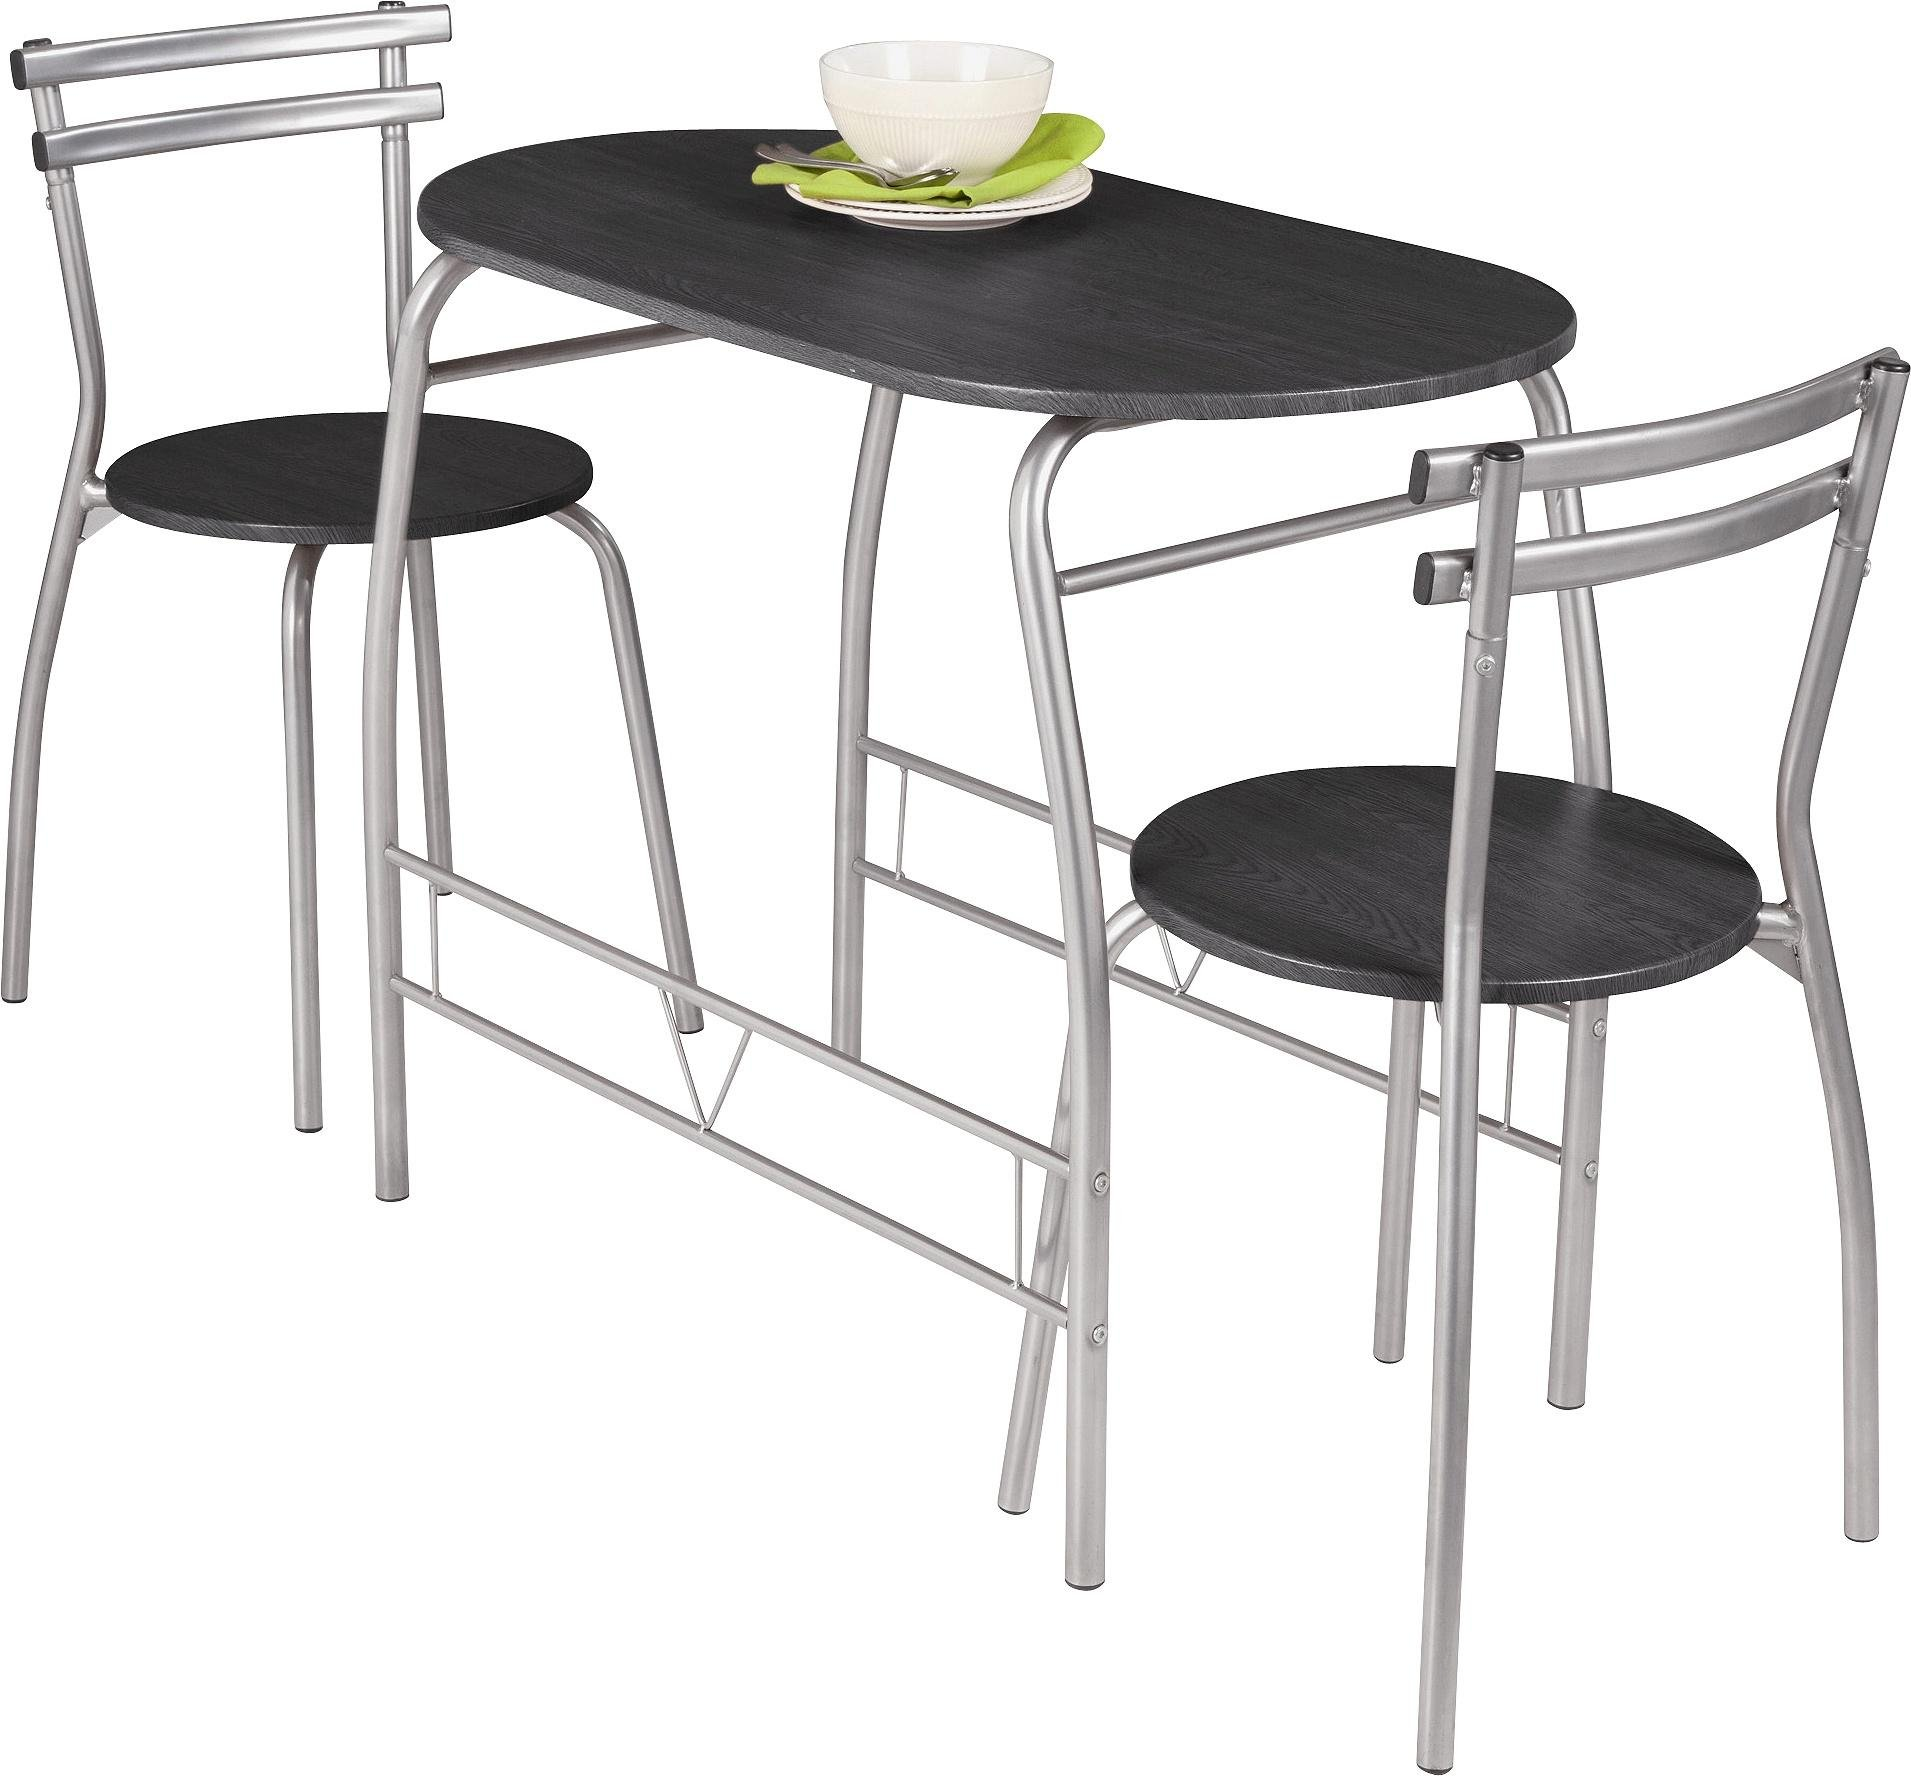 table 2 chairs. home vegas dining table \u0026 2 chairs - black c